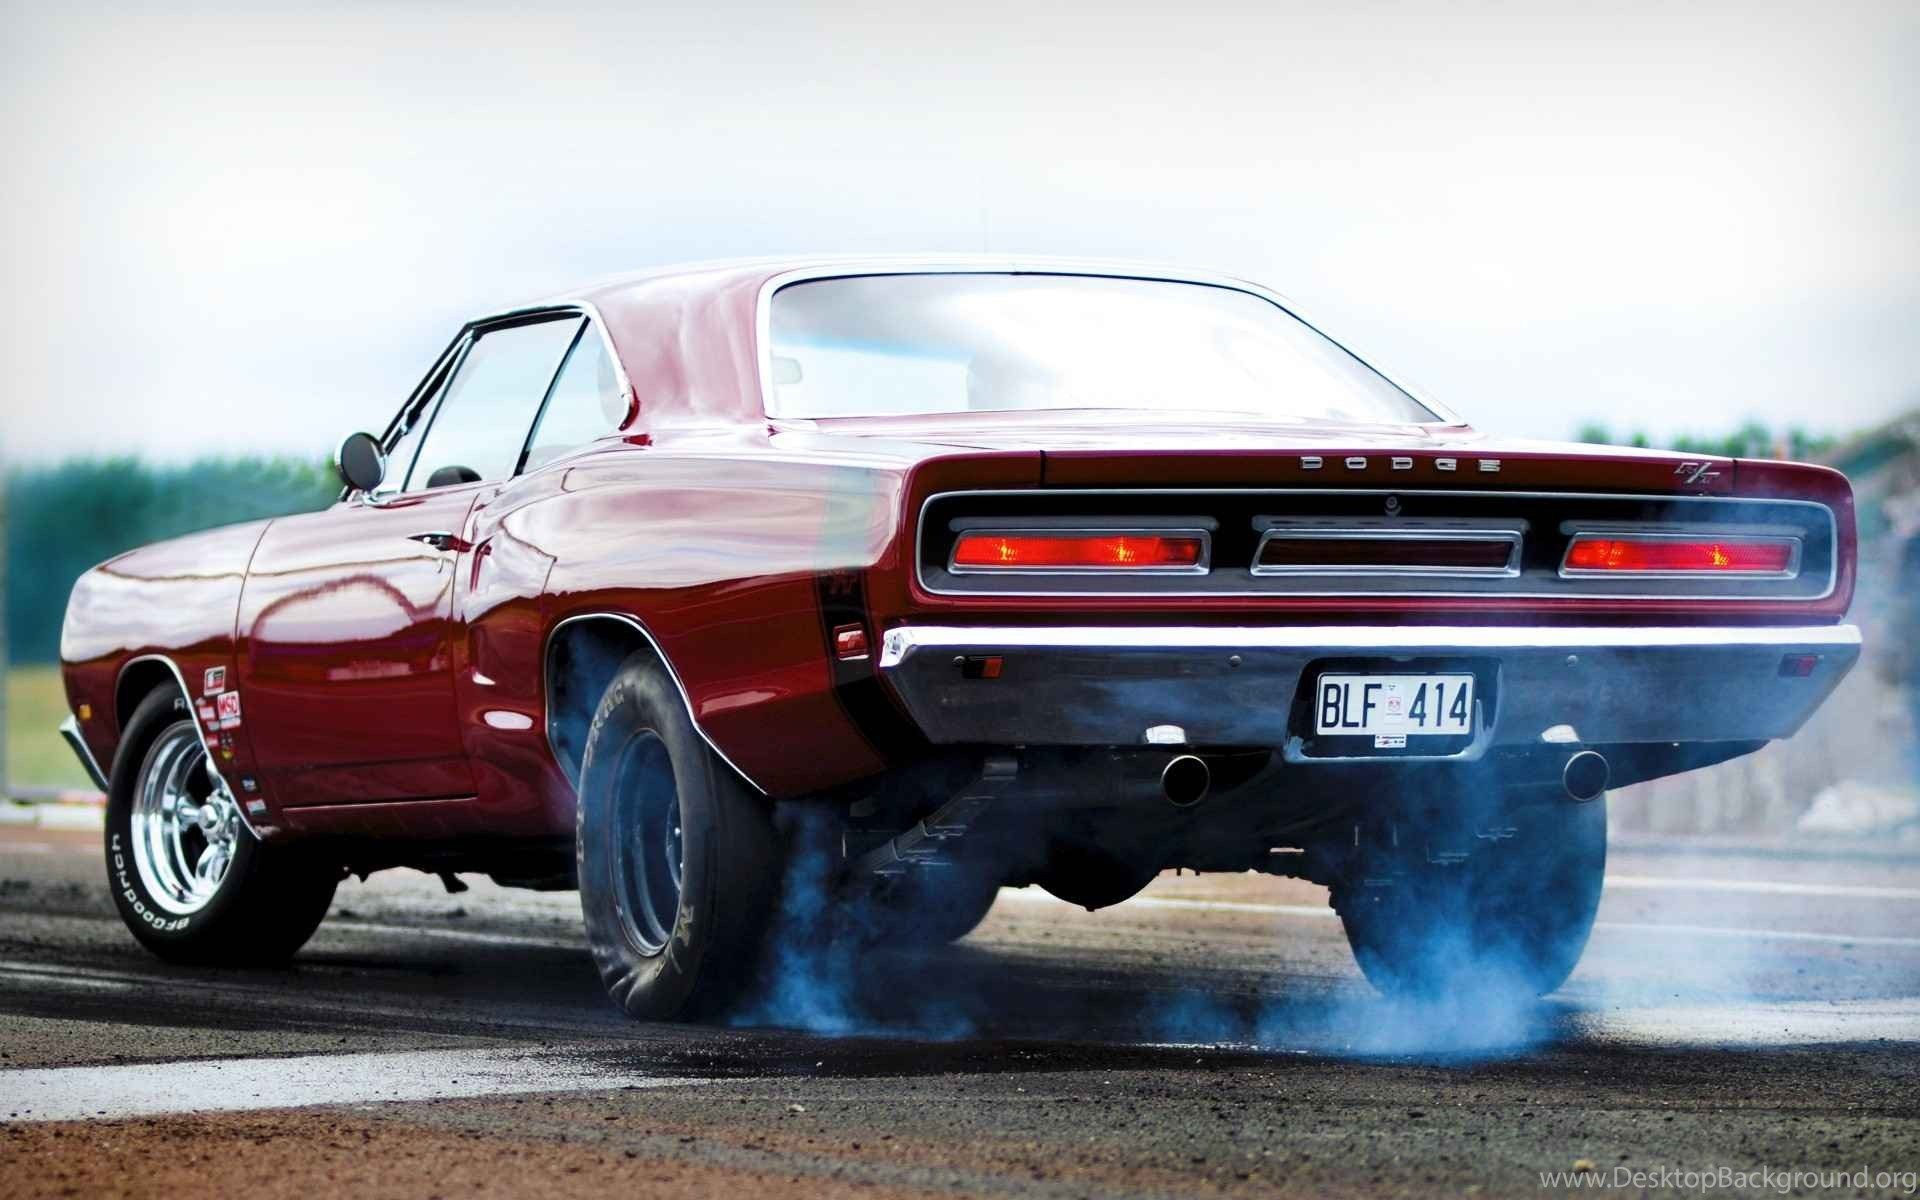 It is really easy to find and set exactly that wallpaper that you want. Car Muscle Cars Dodge Charger Red Cars Wallpapers Hd Desktop Desktop Background